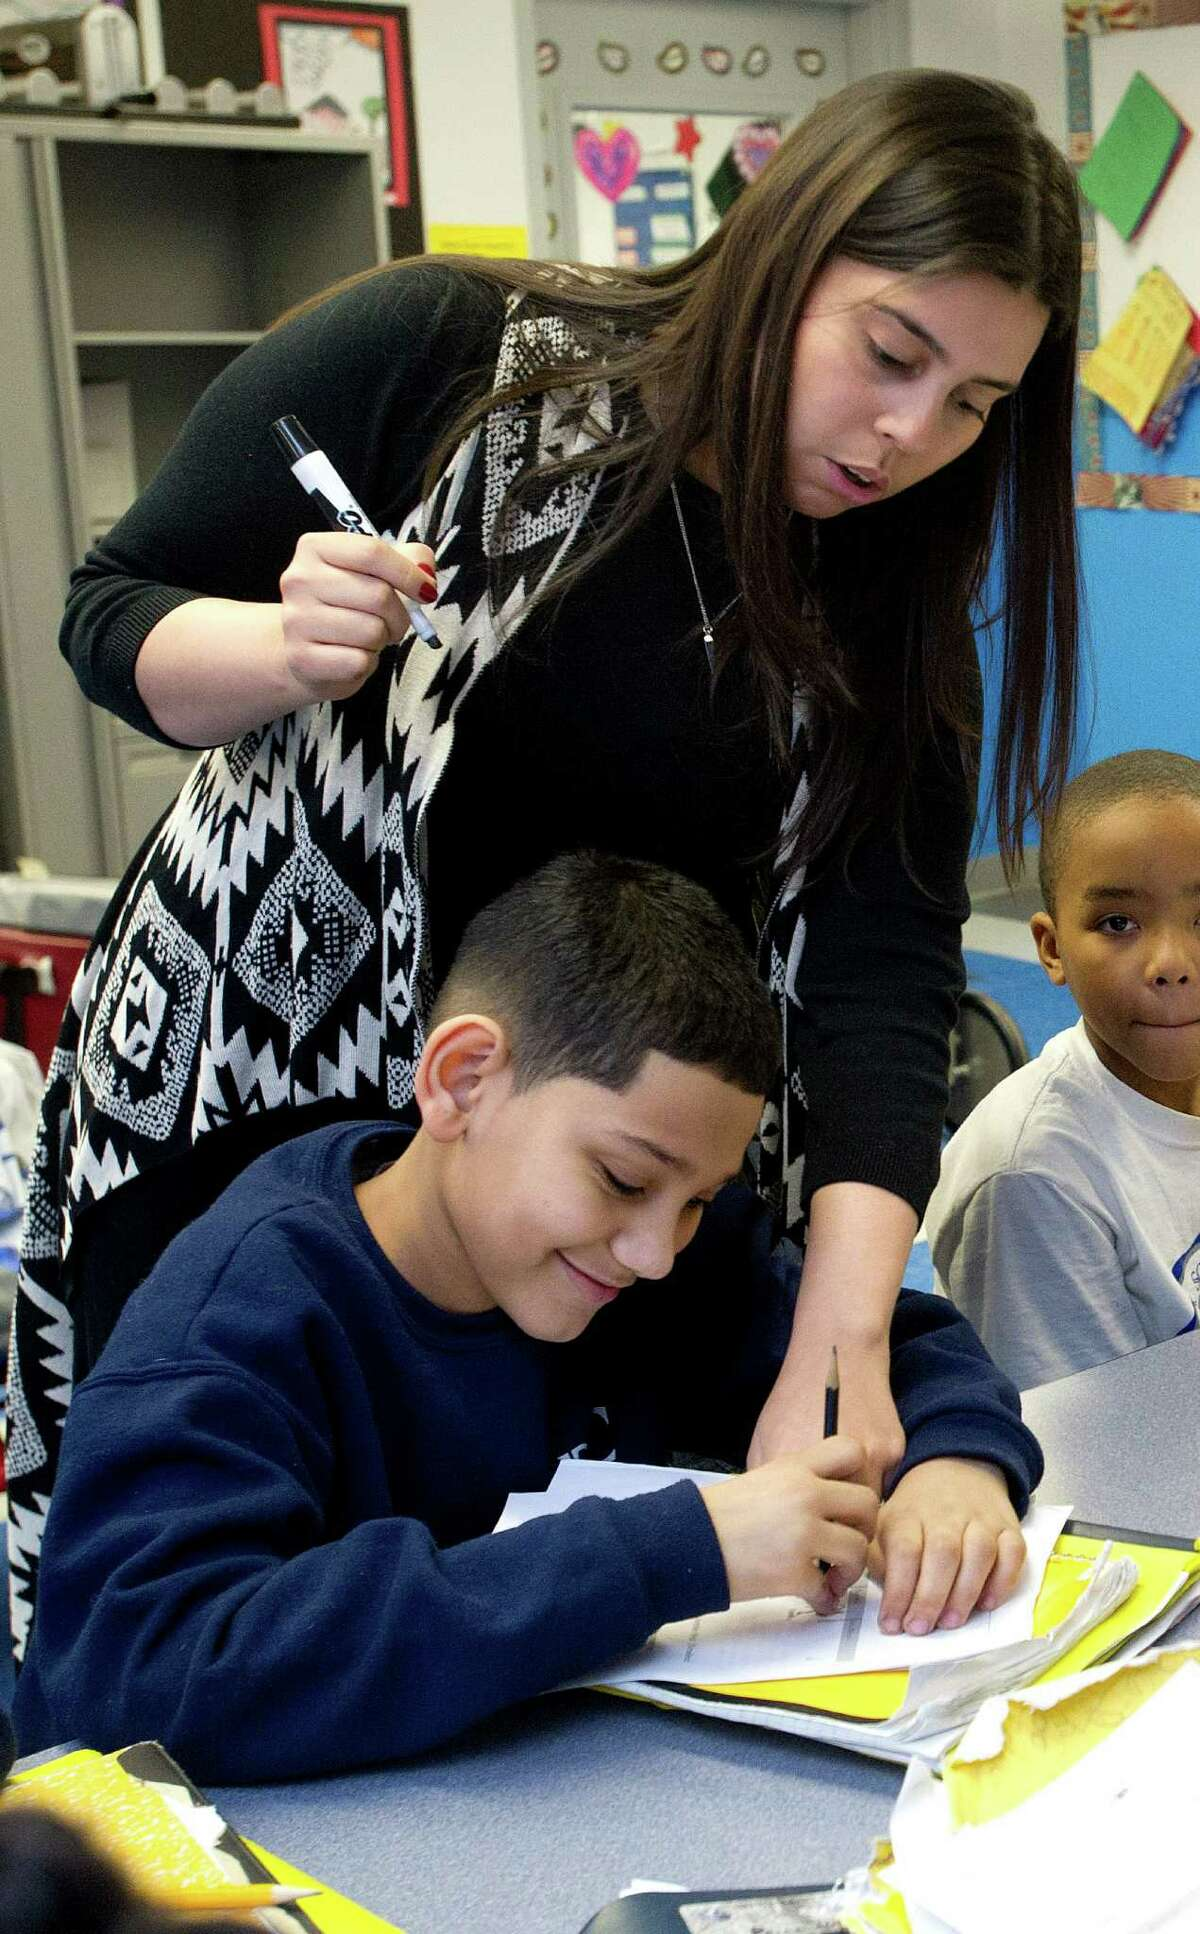 Arleen Rodriguez teaches math at Bronx Charter School for Excellence in New York on Thursday, March 6, 2014. The school has filed an application to open Stamford Charter School for Excellence in 2015.